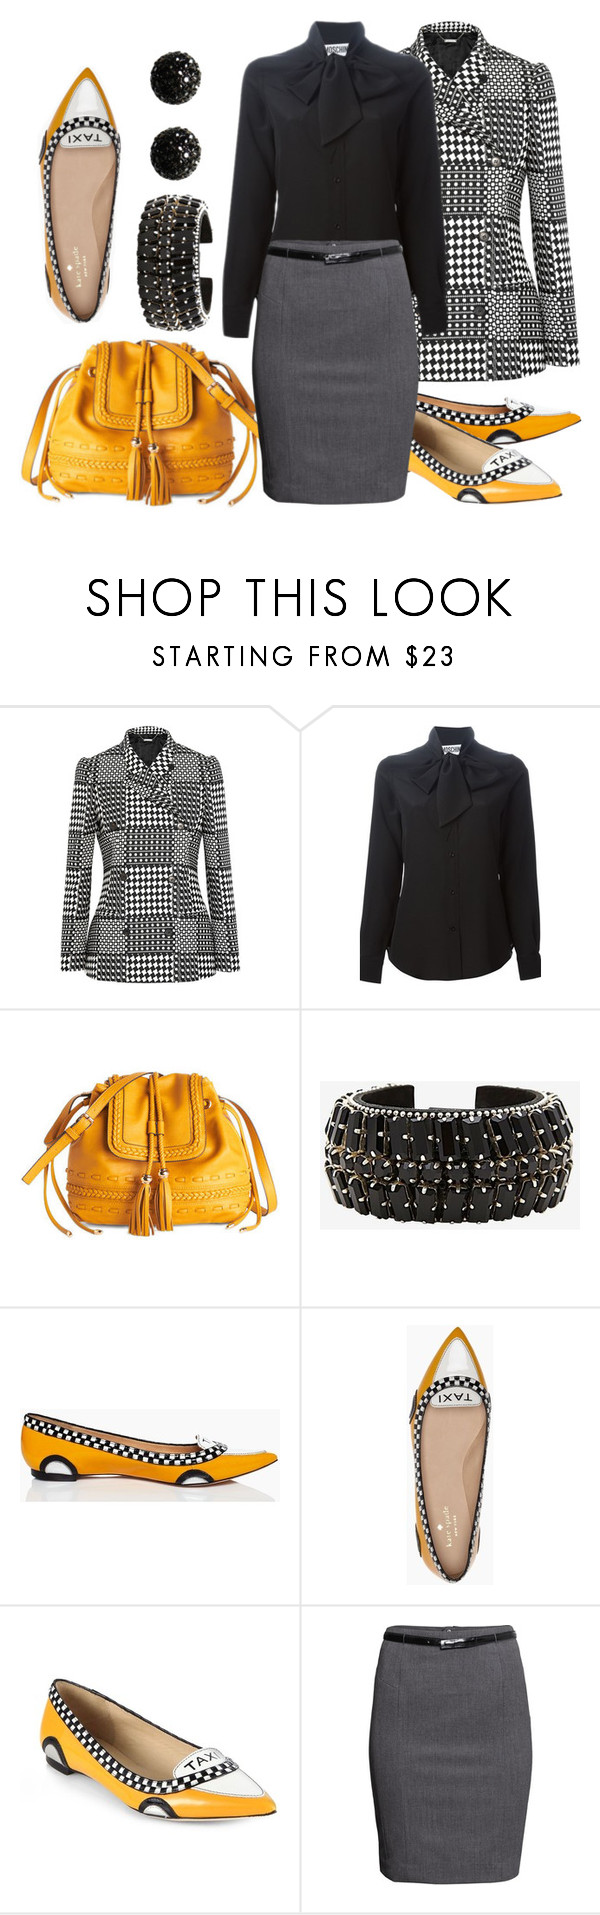 """Taxi!"" by mmmartha ❤ liked on Polyvore featuring Mode, Alexander McQueen, Moschino, Melie Bianco, Barbara Bui, Kate Spade, H&M und Kenneth Jay Lane"